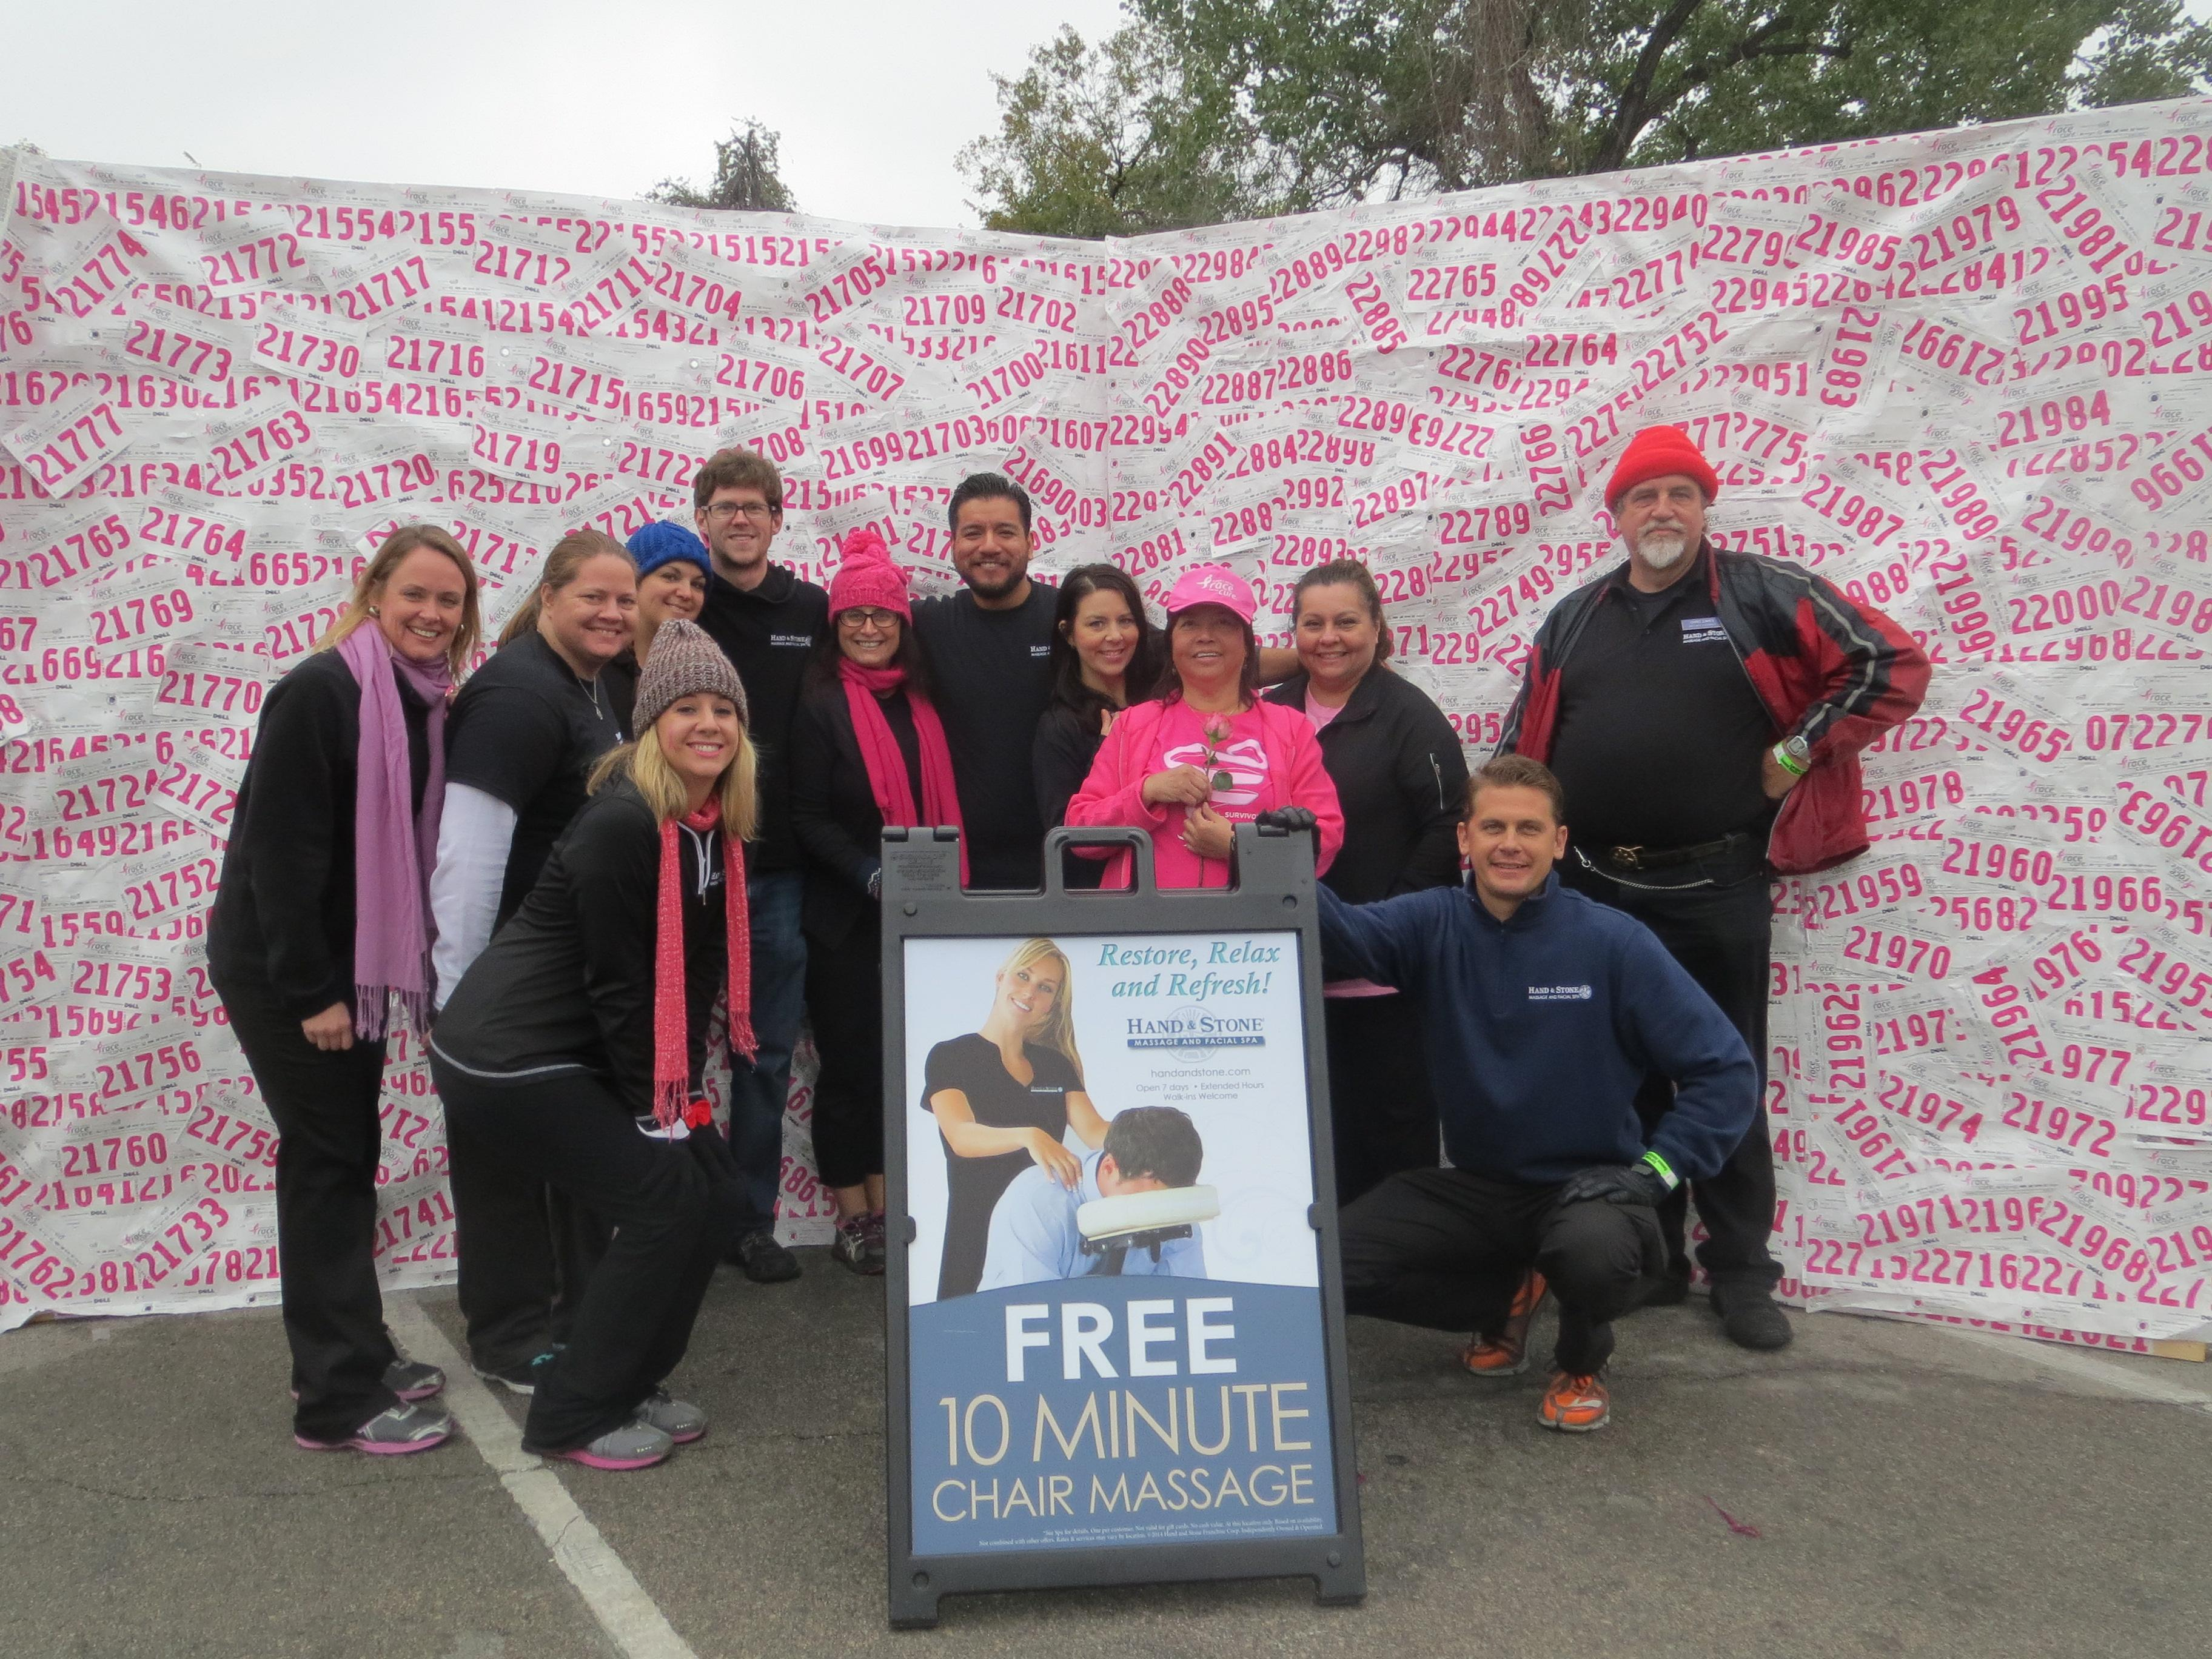 Hand & Stone team at Komen, Austin Race for the Cure event